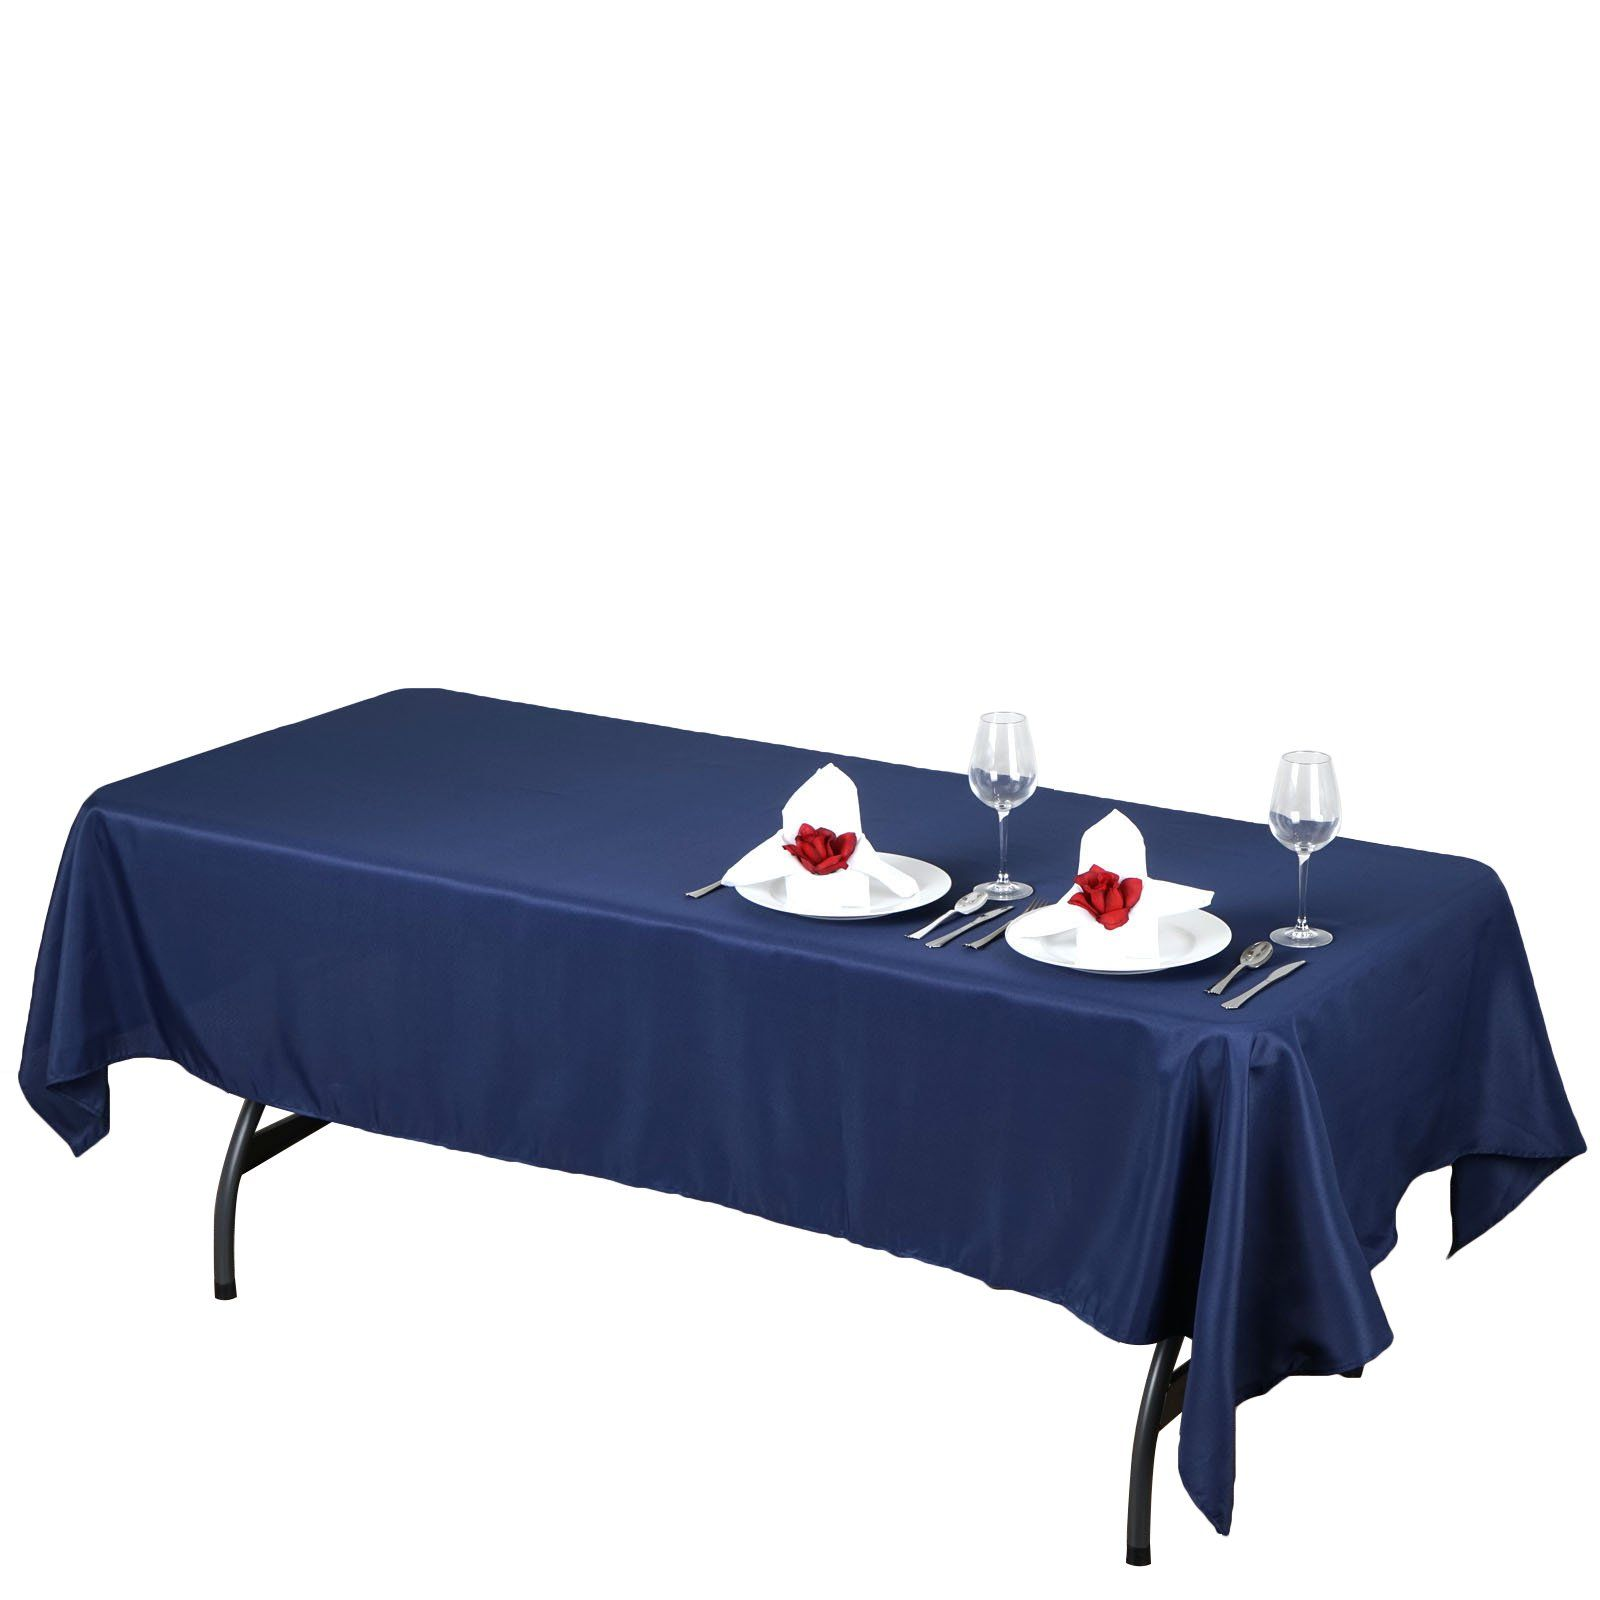 60x102 Navy Blue Polyester Rectangular Tablecloth Table Cloth